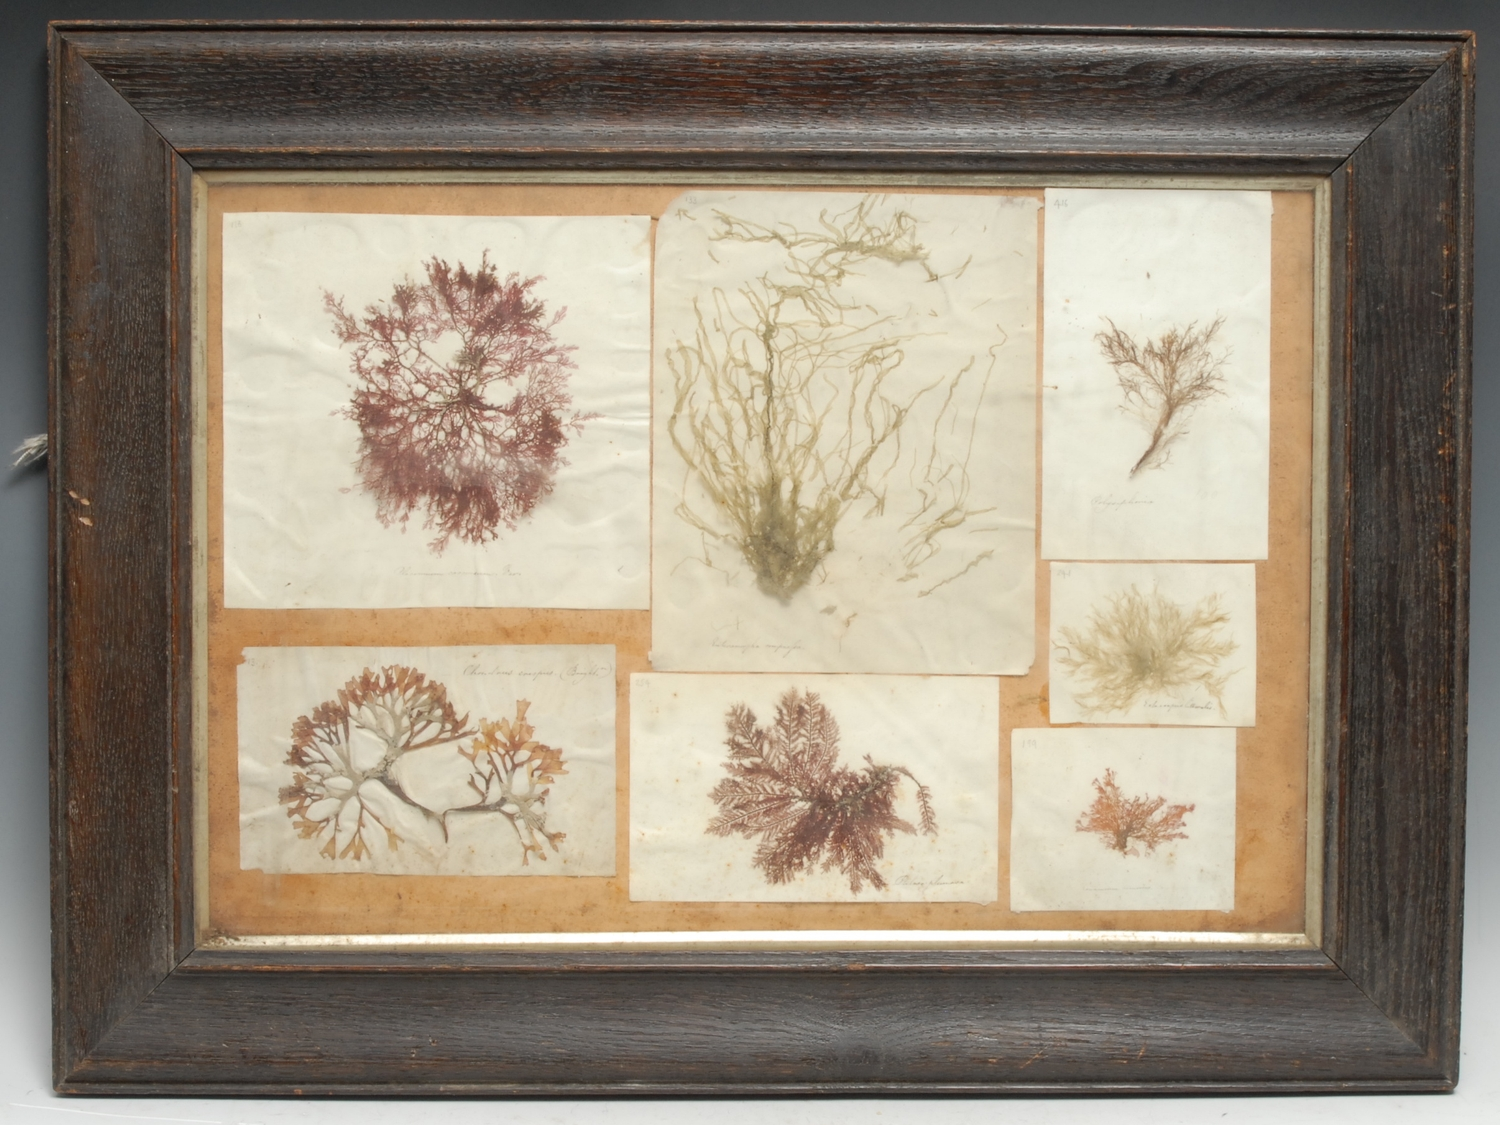 Natural History - a 'herbarium' arrangement of seaweed samples, each annotated with Linnaean